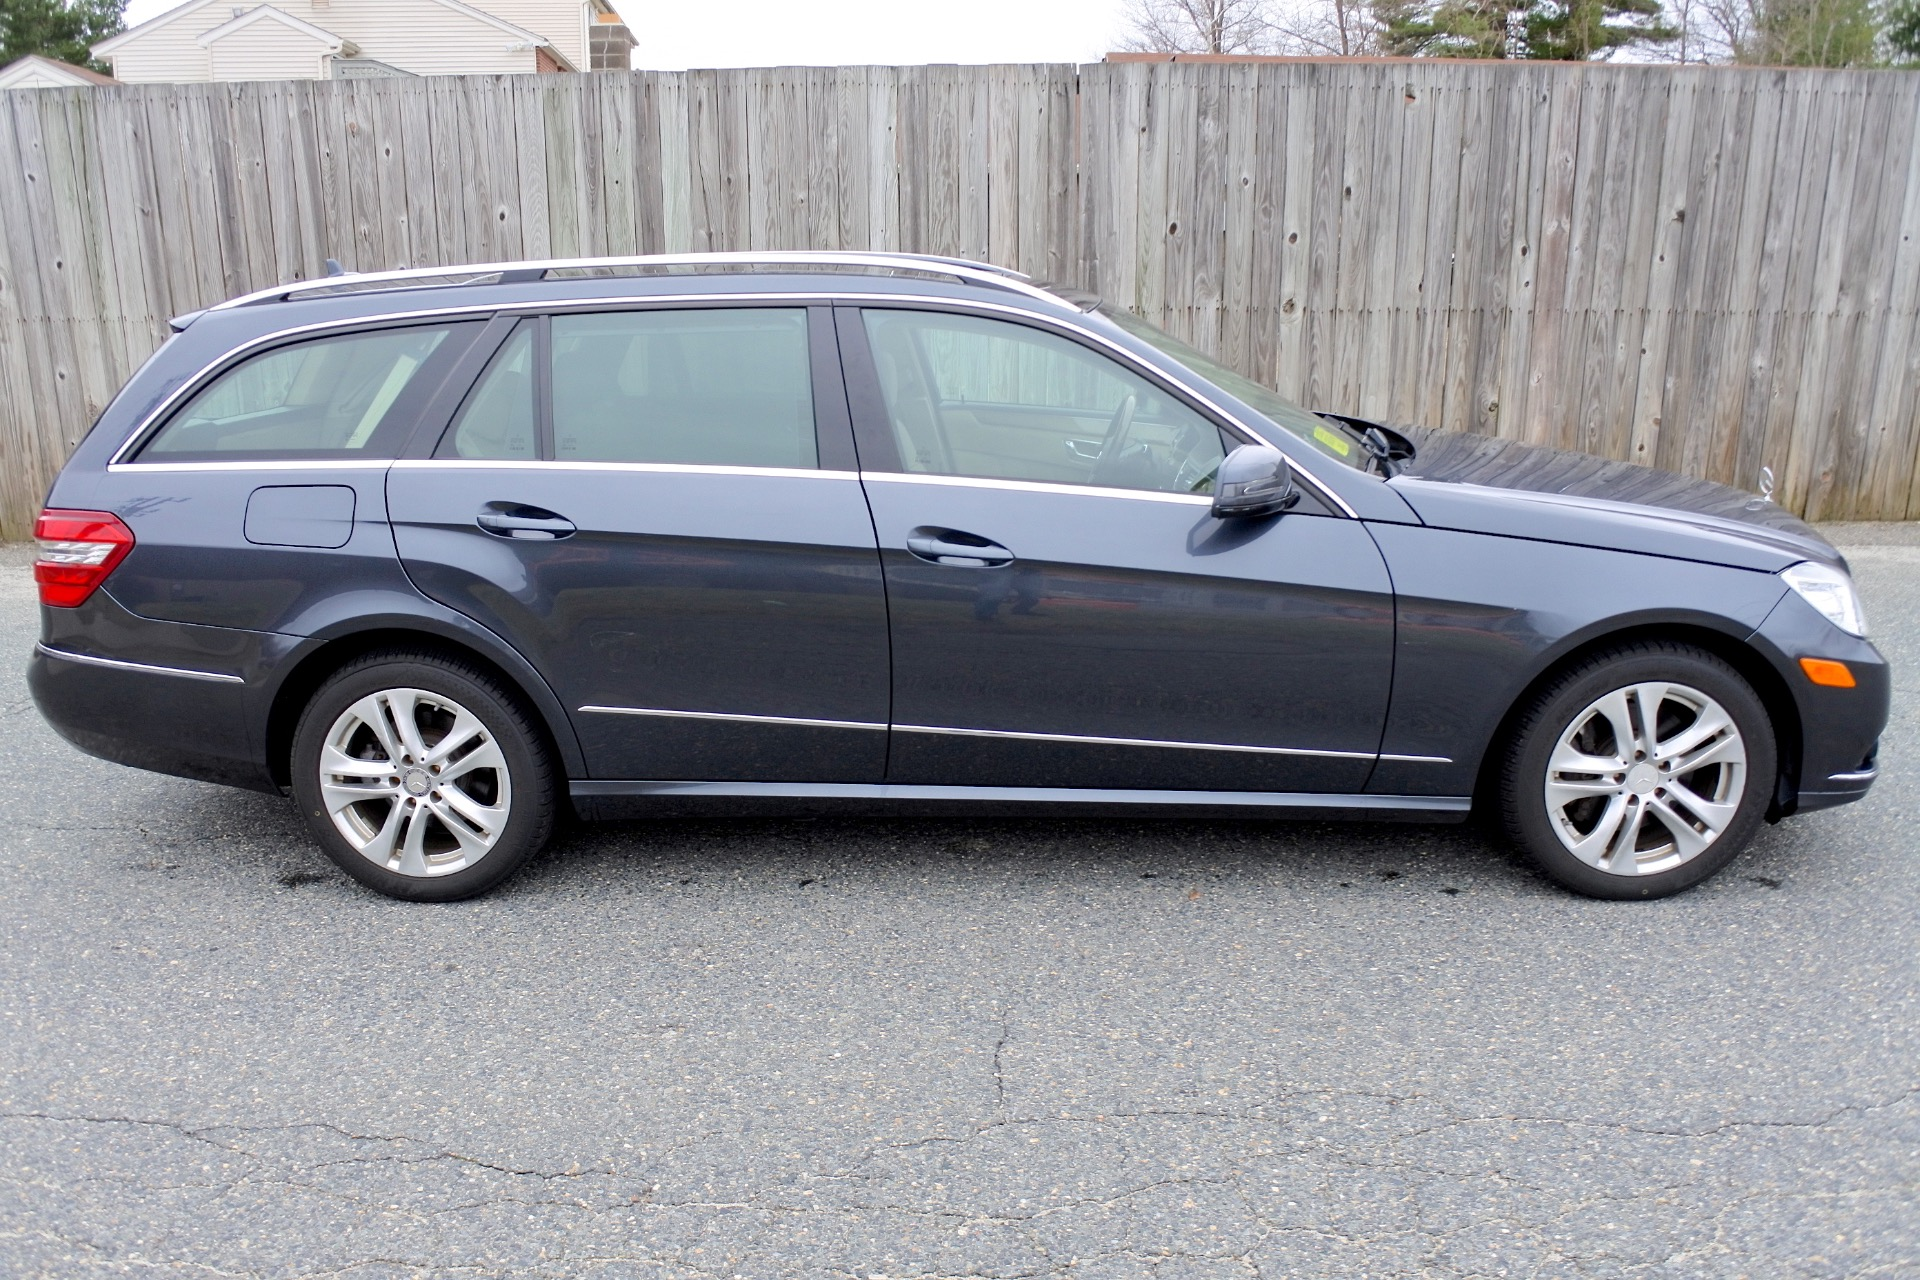 Used 2011 Mercedes-Benz E-Class 4dr Wgn E350 Luxury 4MATIC Used 2011 Mercedes-Benz E-Class 4dr Wgn E350 Luxury 4MATIC for sale  at Metro West Motorcars LLC in Shrewsbury MA 6